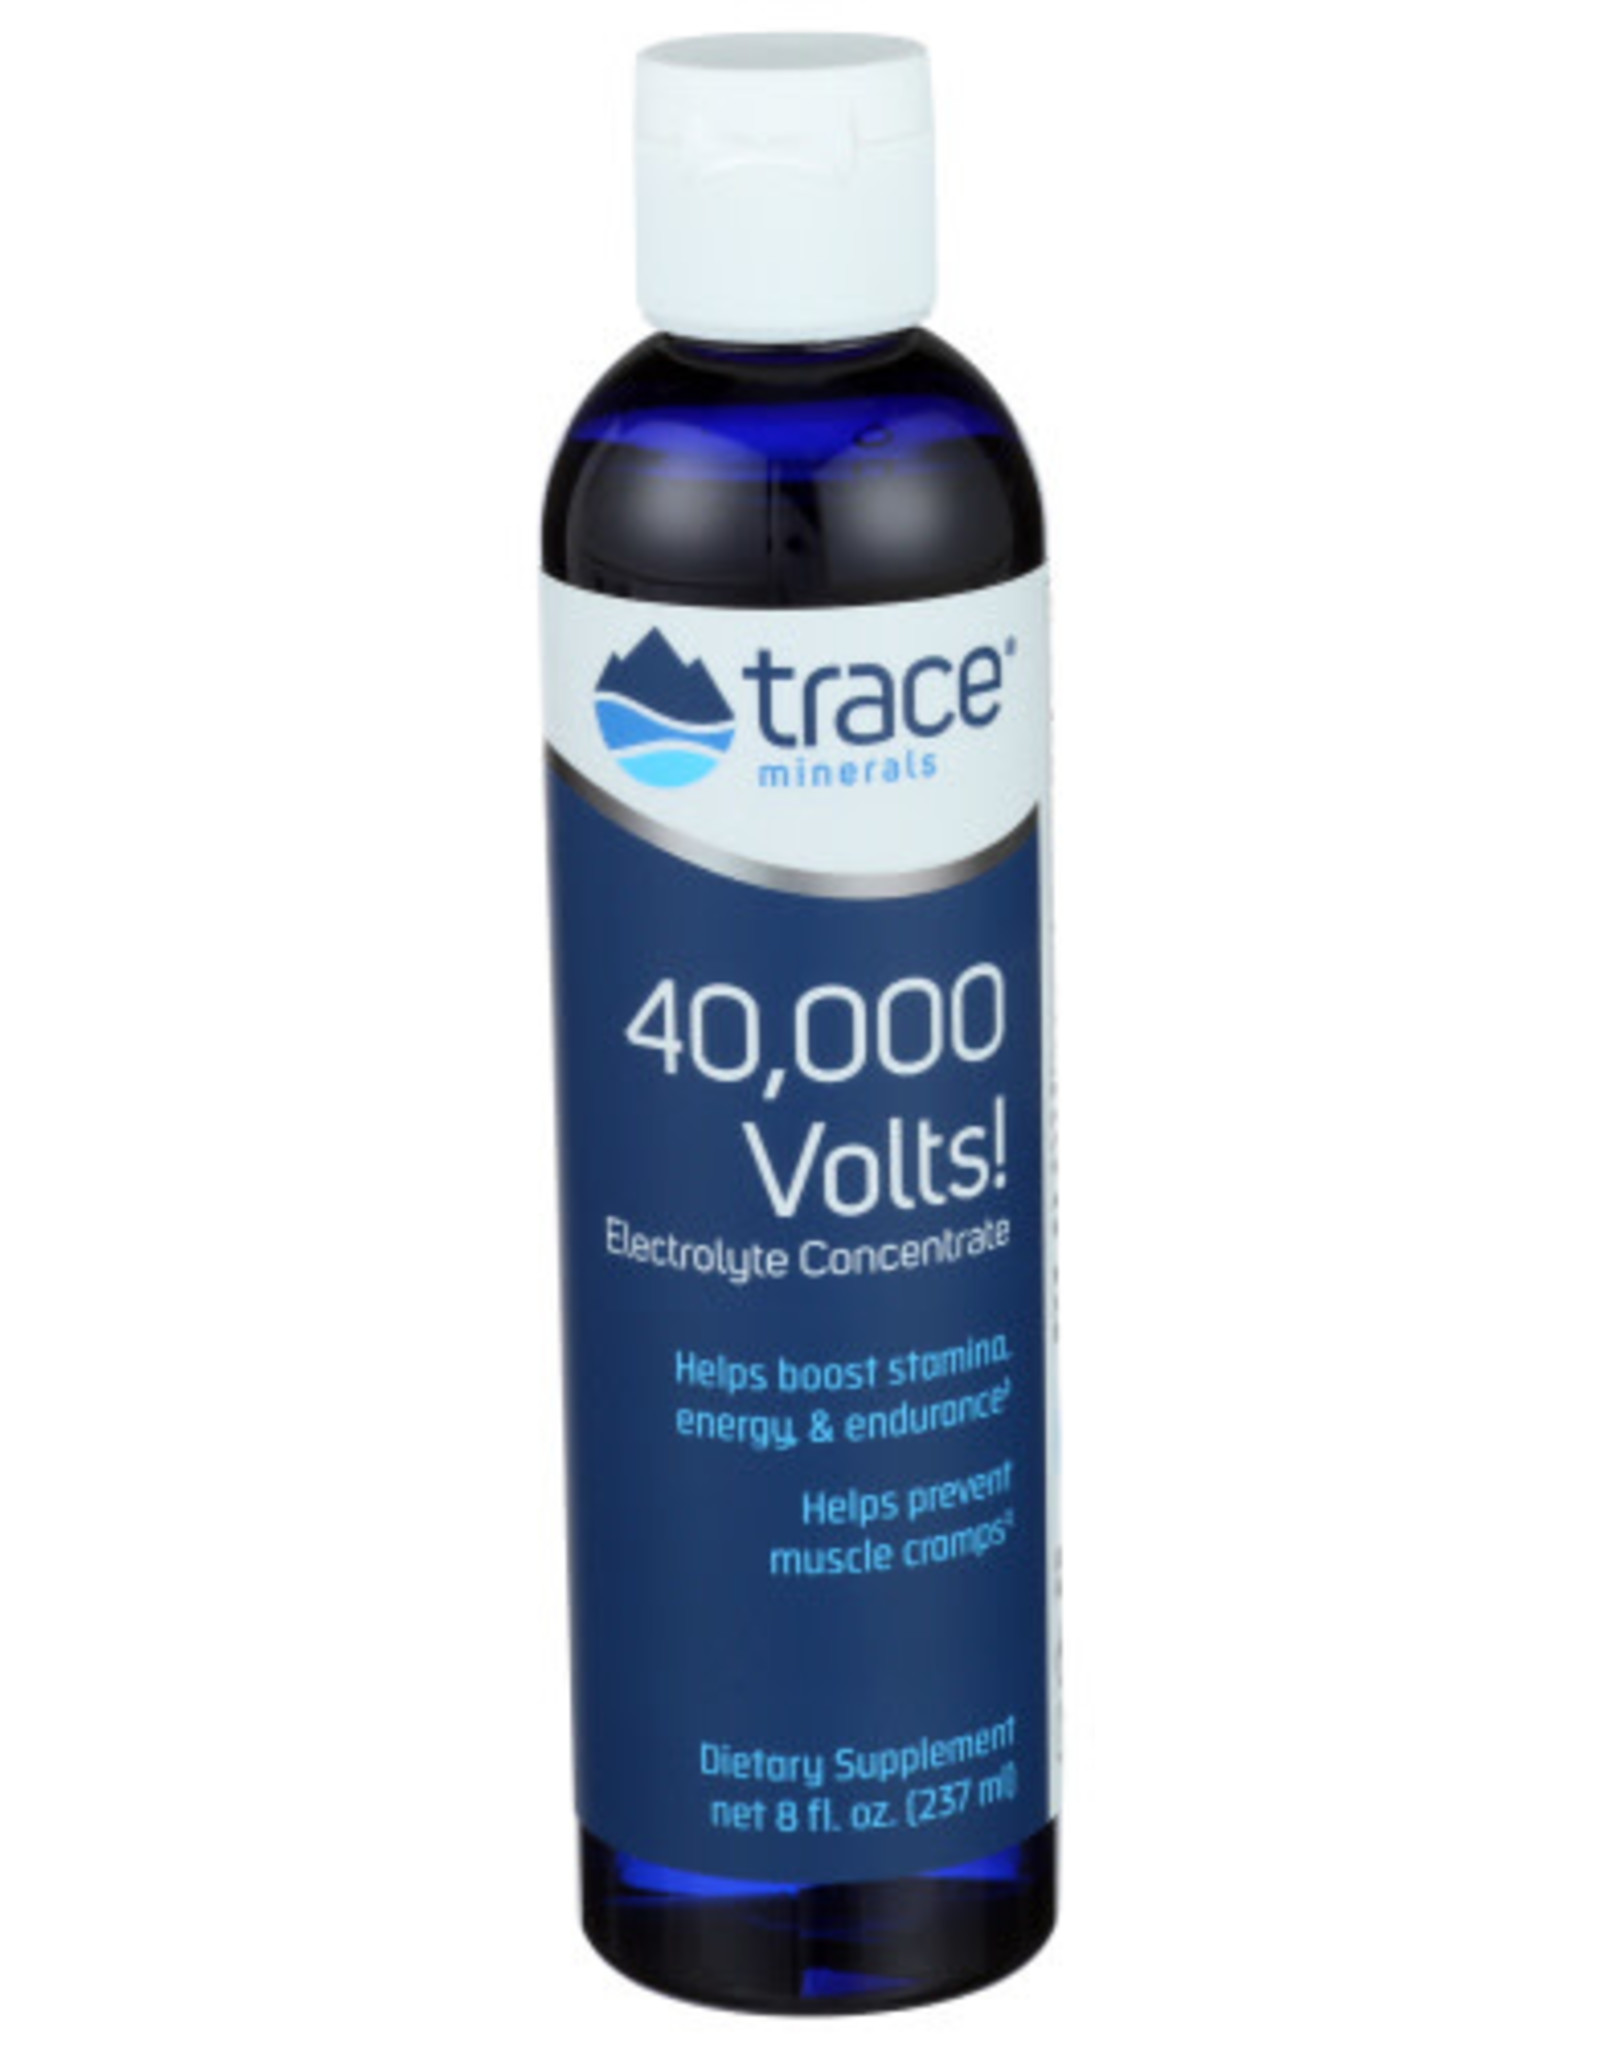 TRACE MINERALS Trace Minerals 40,000 Volts Electrlyte Concentrate 8 oz